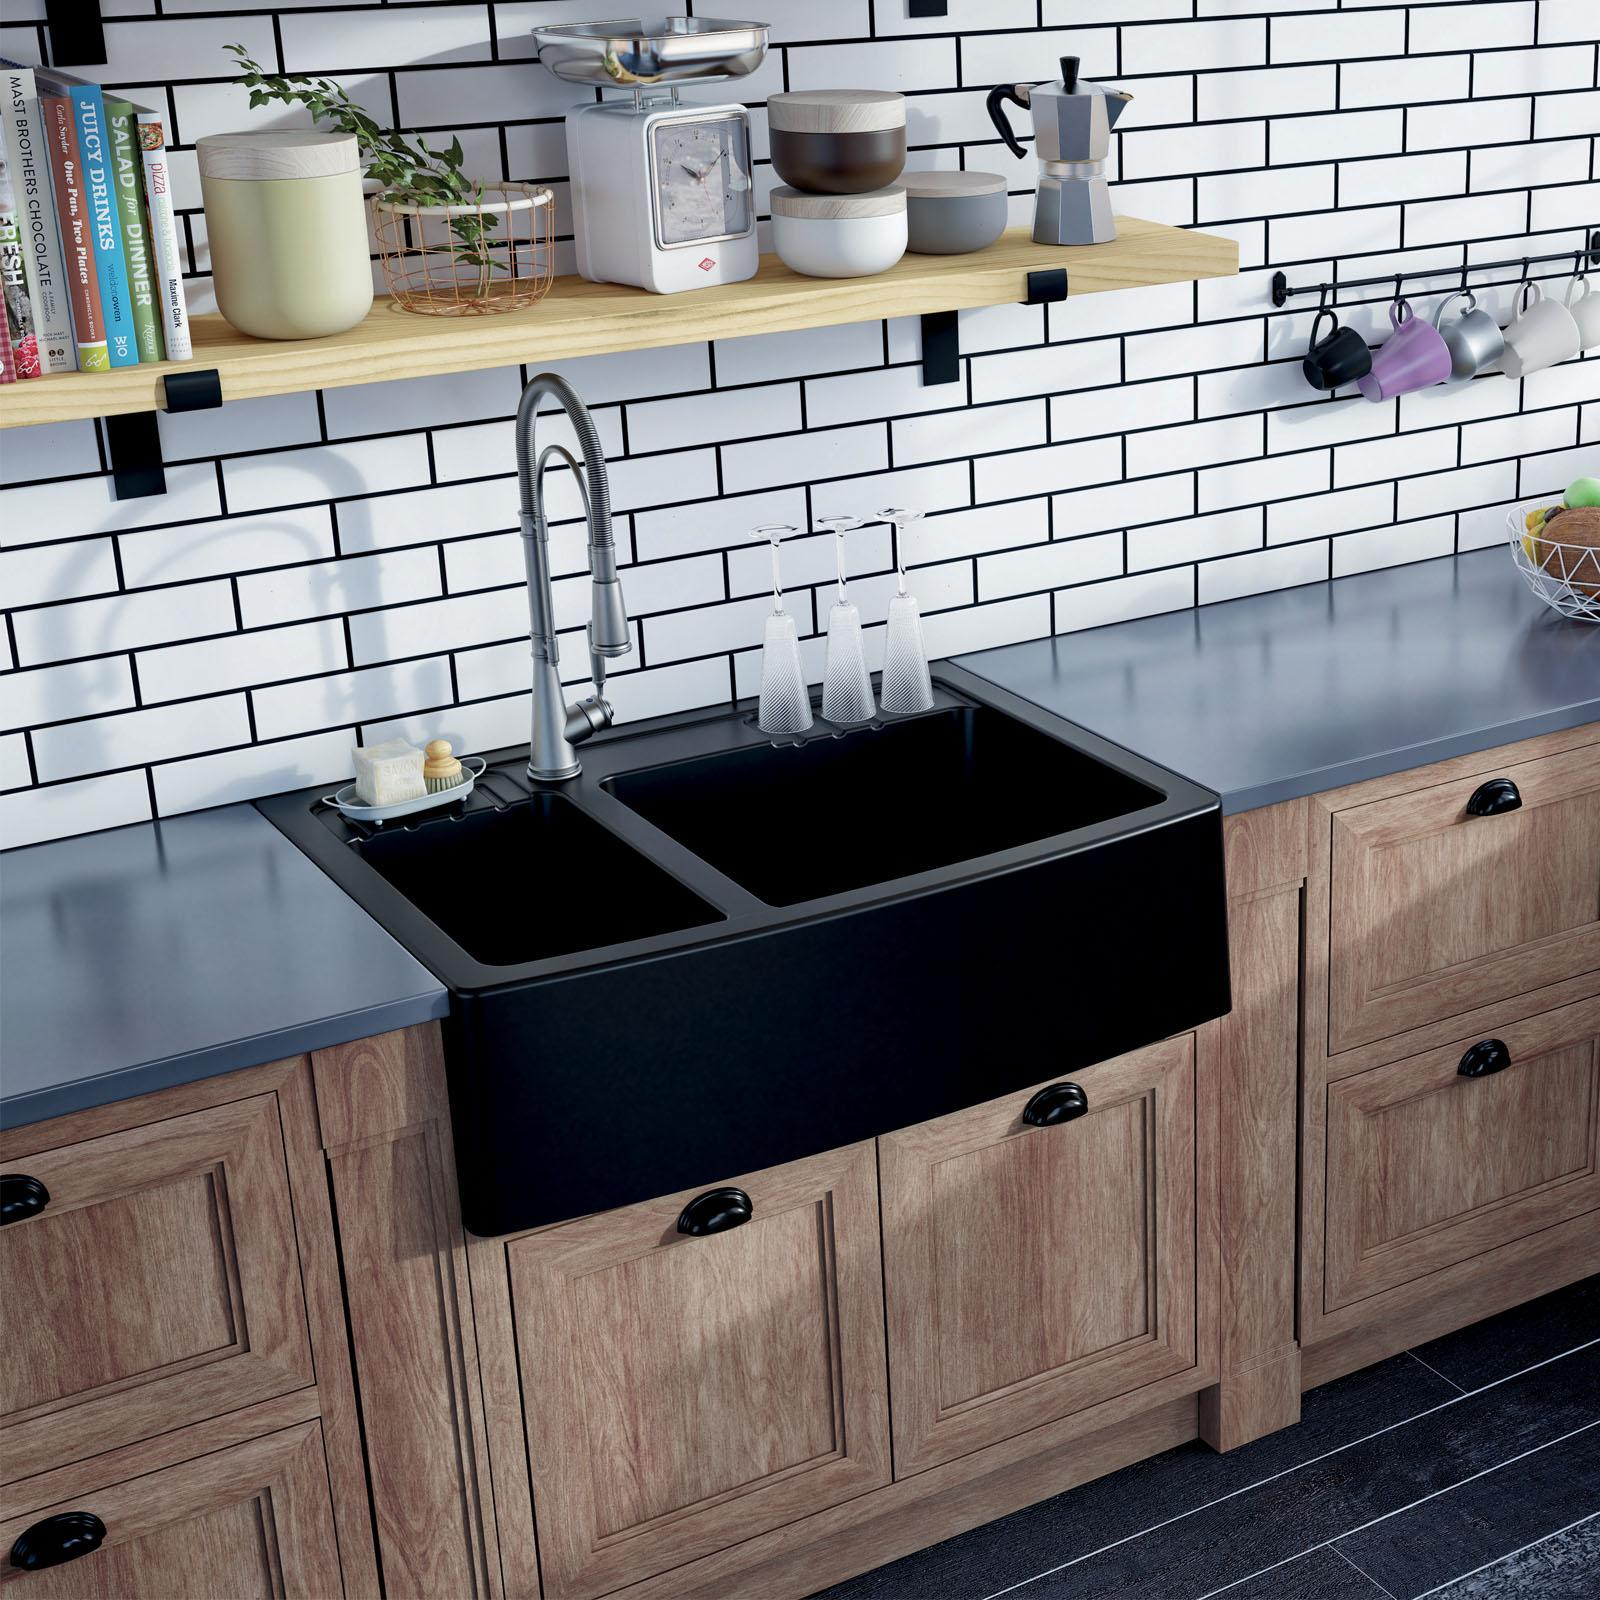 High-quality sink Clotaire III granit black - one and a half bowl - ambience